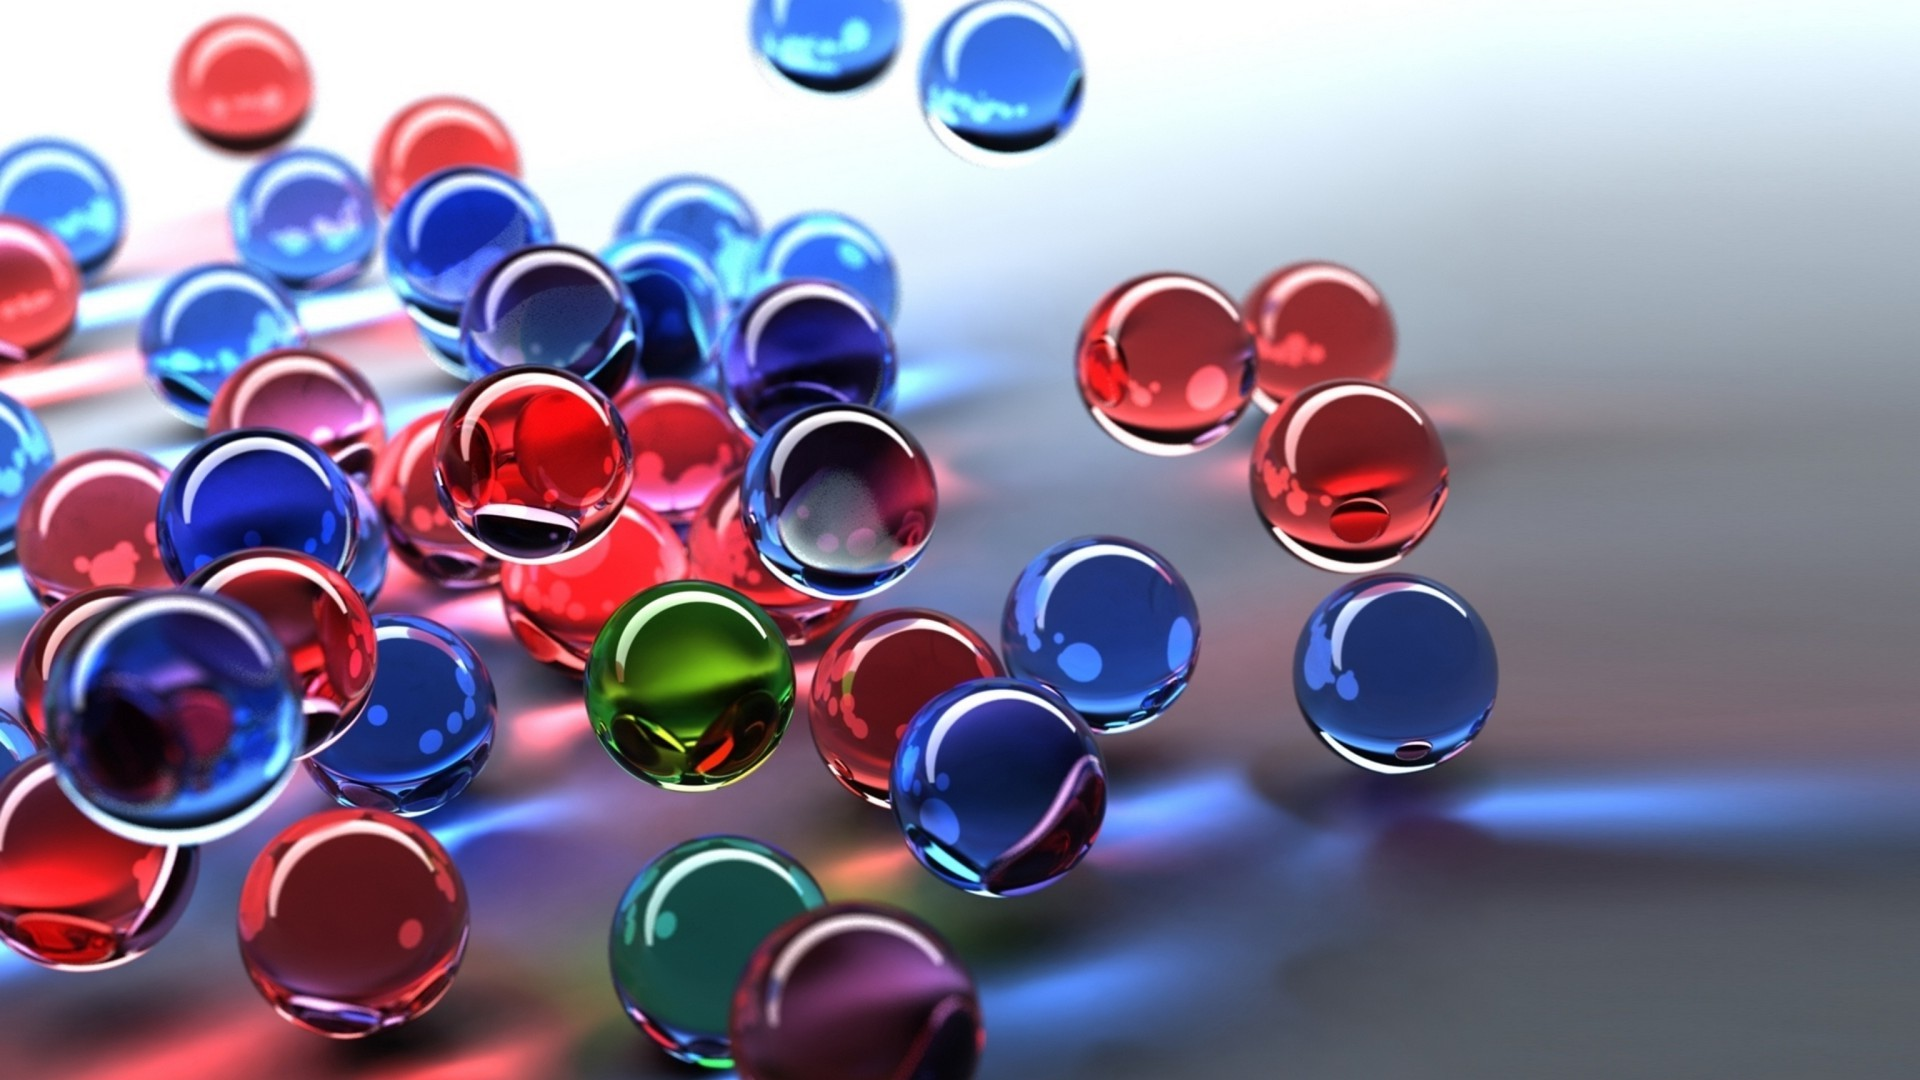 3D Glass Balls Red Blue Green HD Wallpaper - Wallpaper Gallery